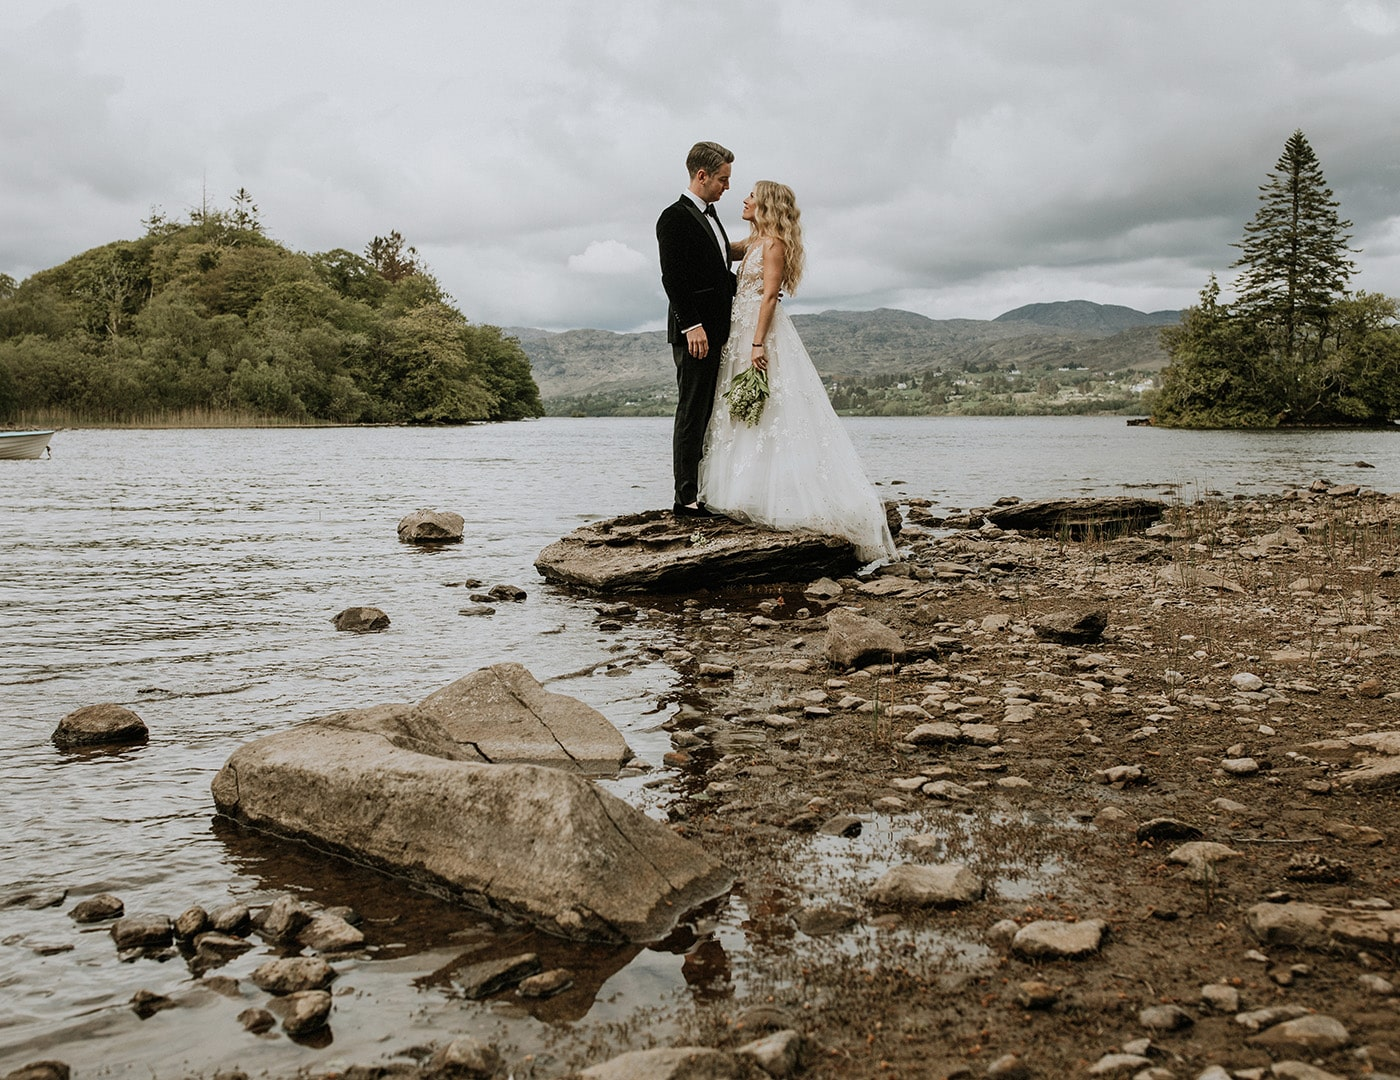 Destination Wedding, Olivia Buckley International, Getting married in Ireland, Event Planner in Ireland